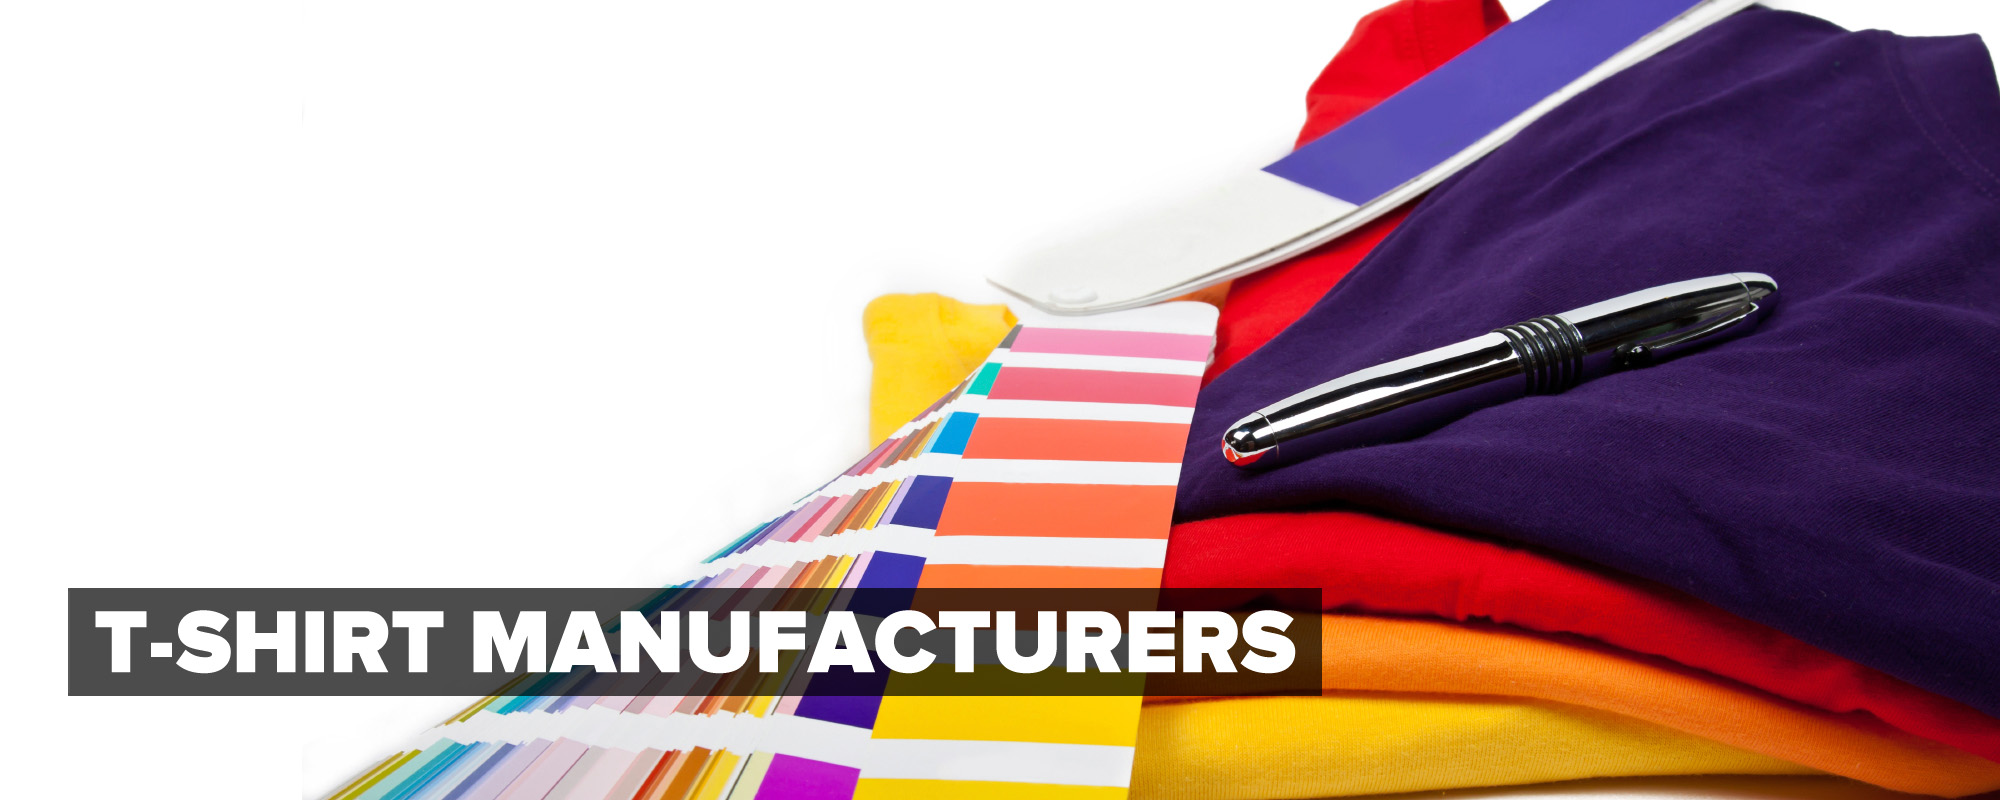 T shirt manufacturers fabric denim manufacturing in usa for T shirt distributor manufacturers